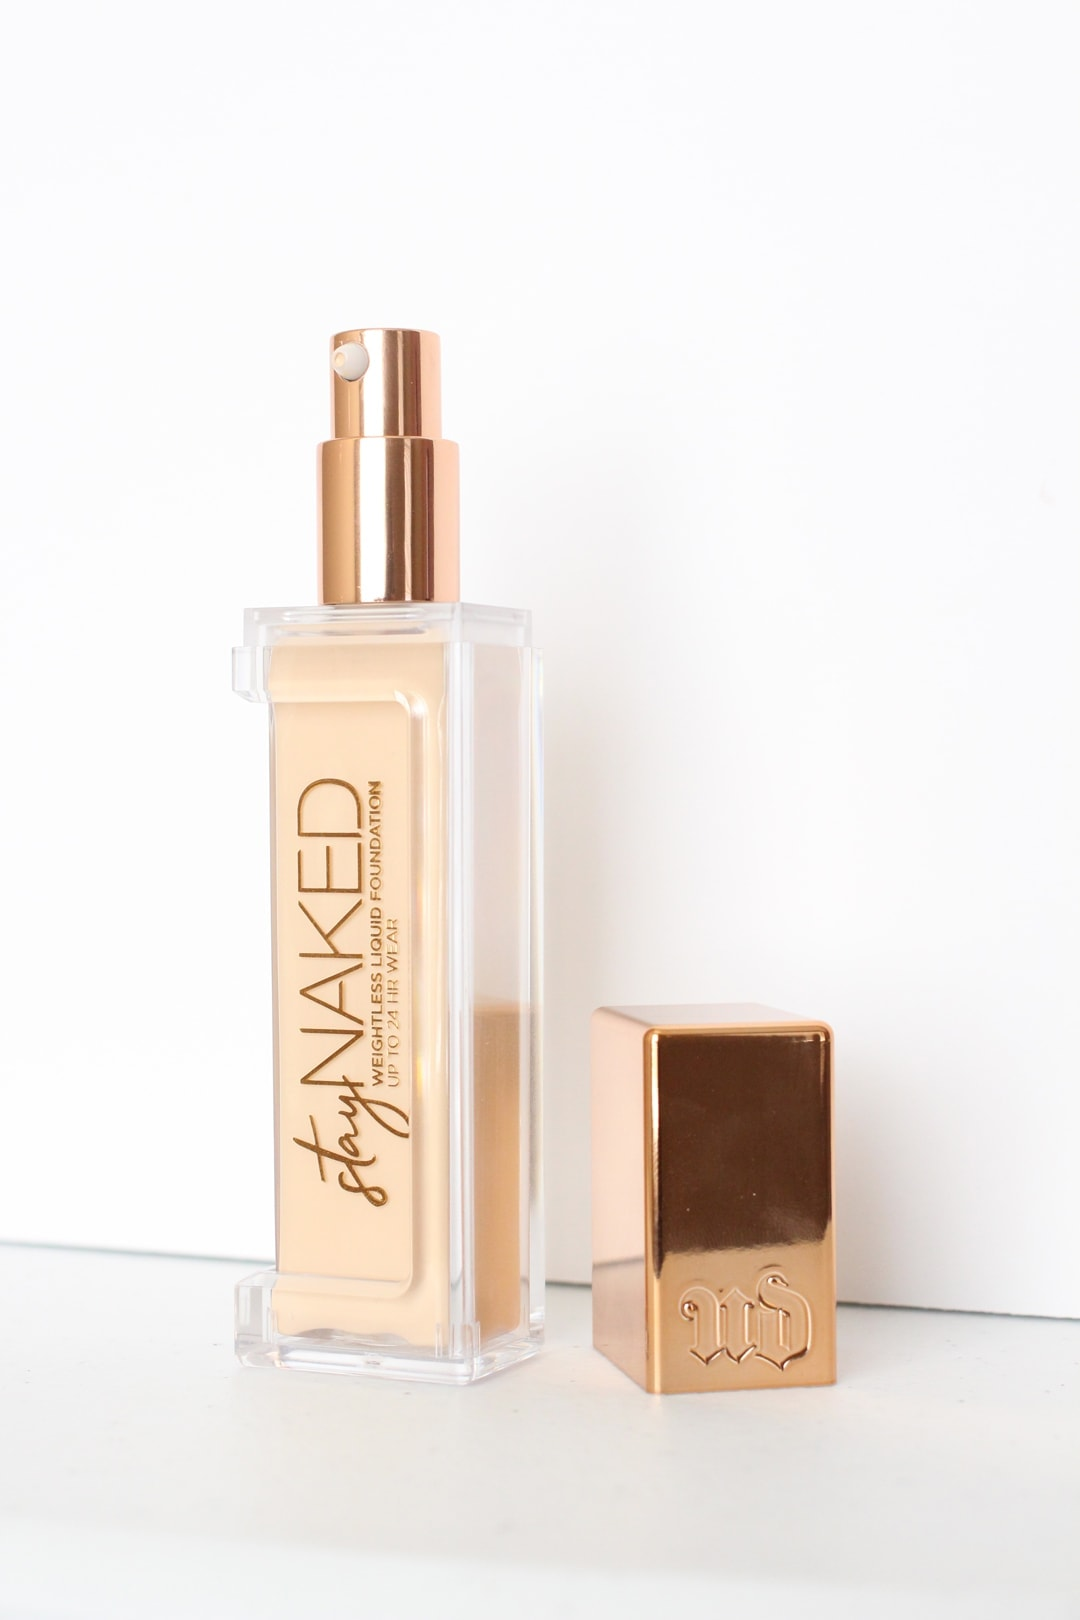 Urban Decay Stay Naked Liquid Foundation Review